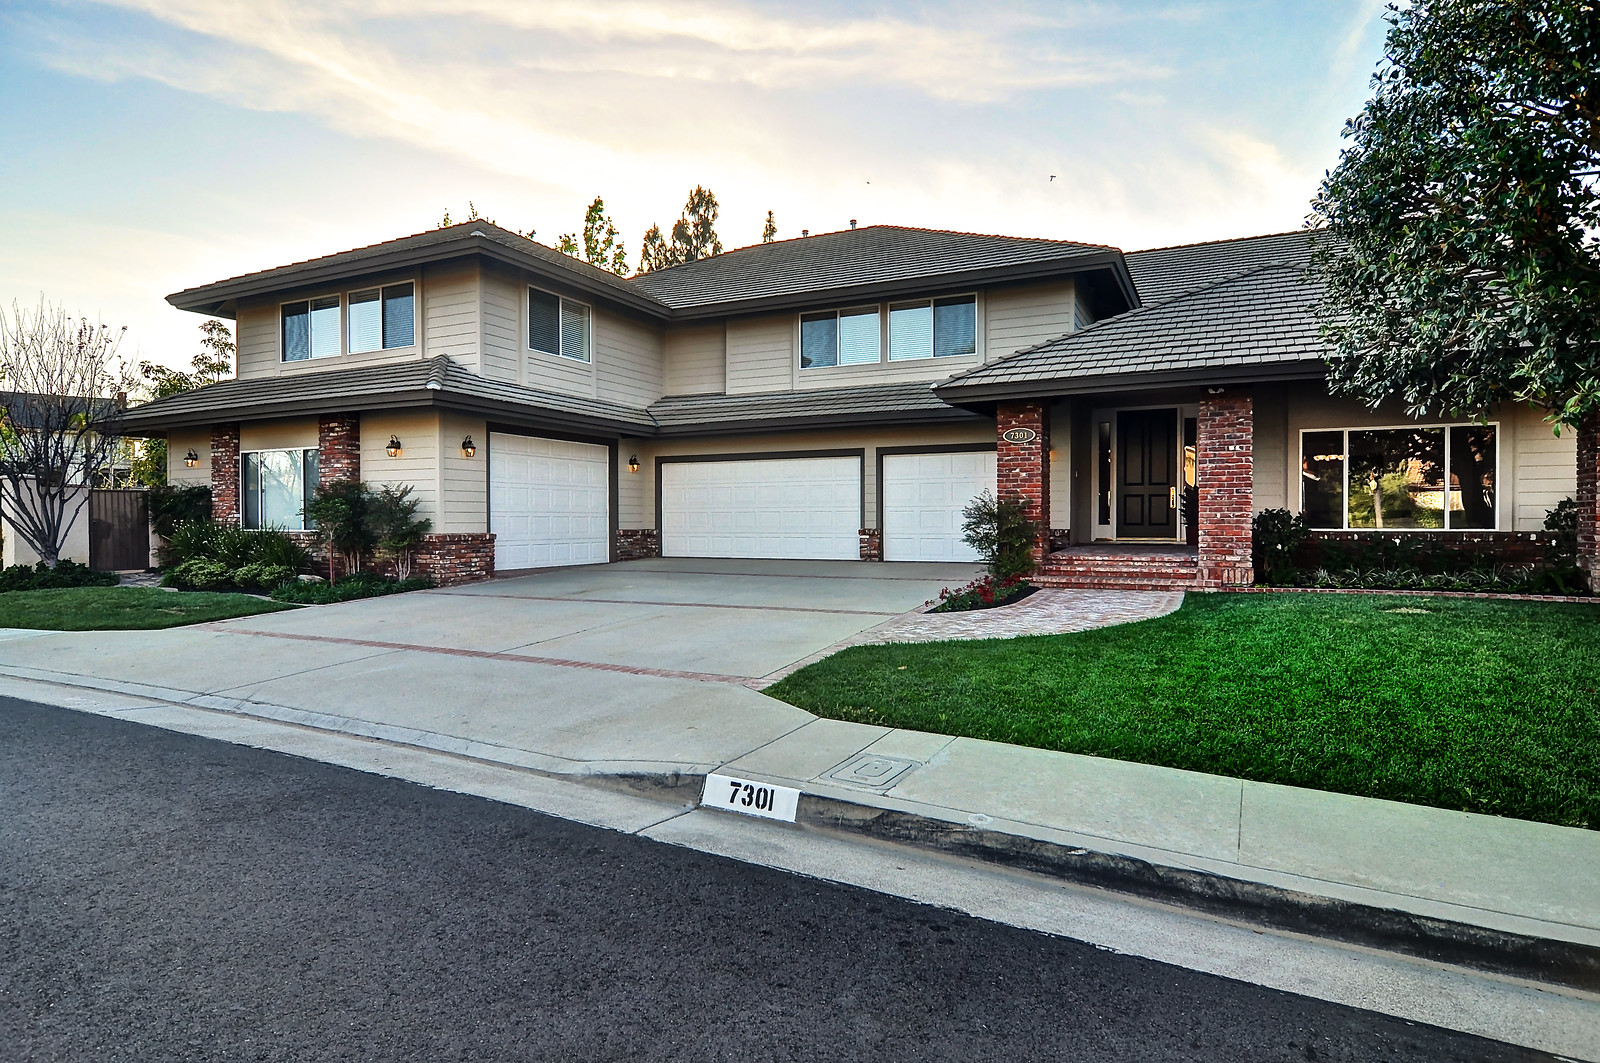 7301 E Kite Drive | Open House Sunday 3/29 from 1-4 pm